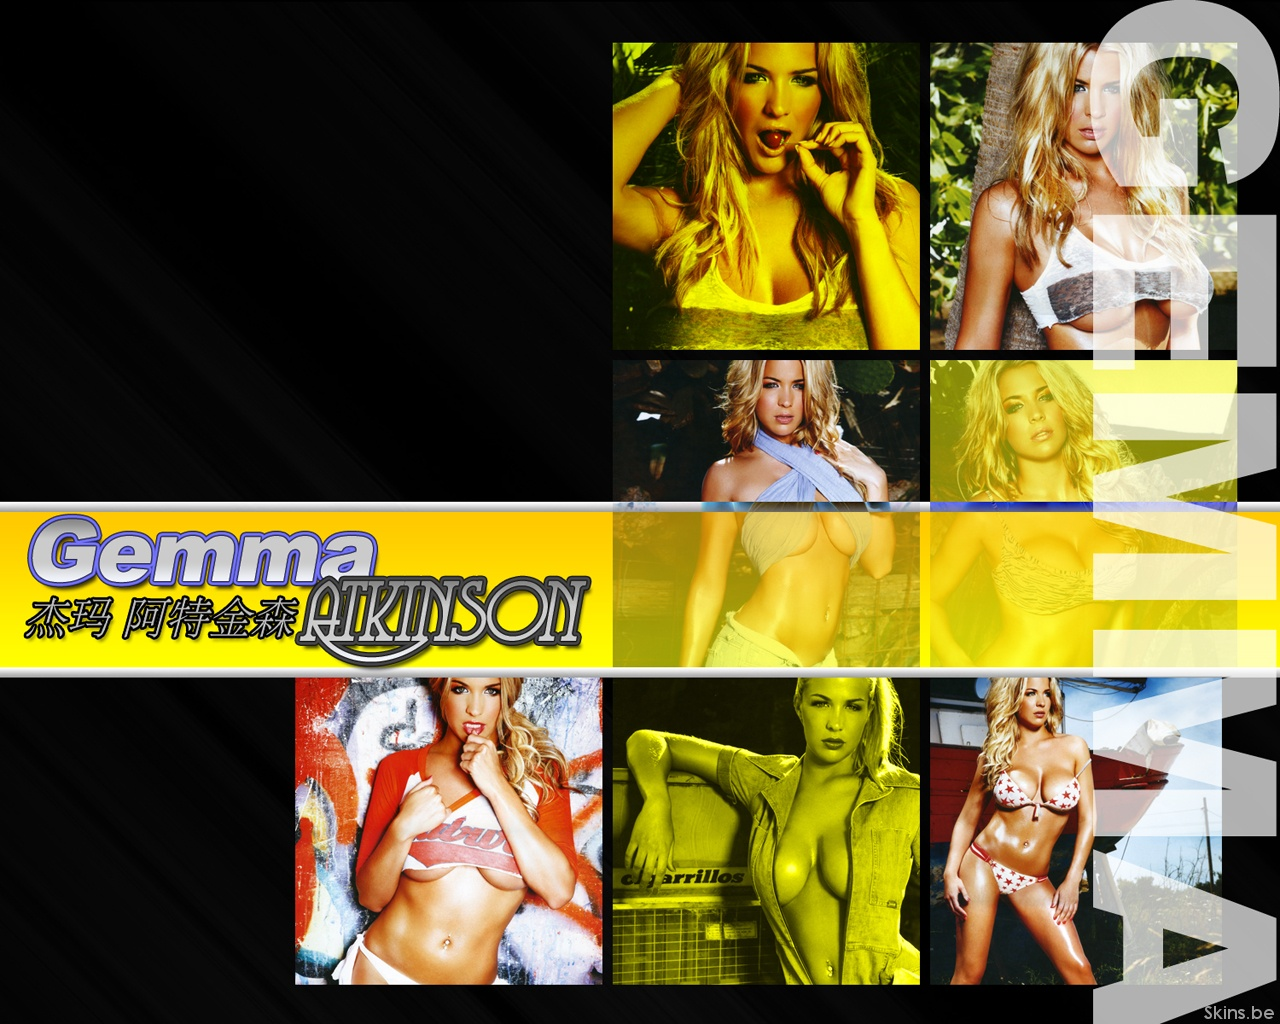 Gemma Atkinson wallpaper (#37838)